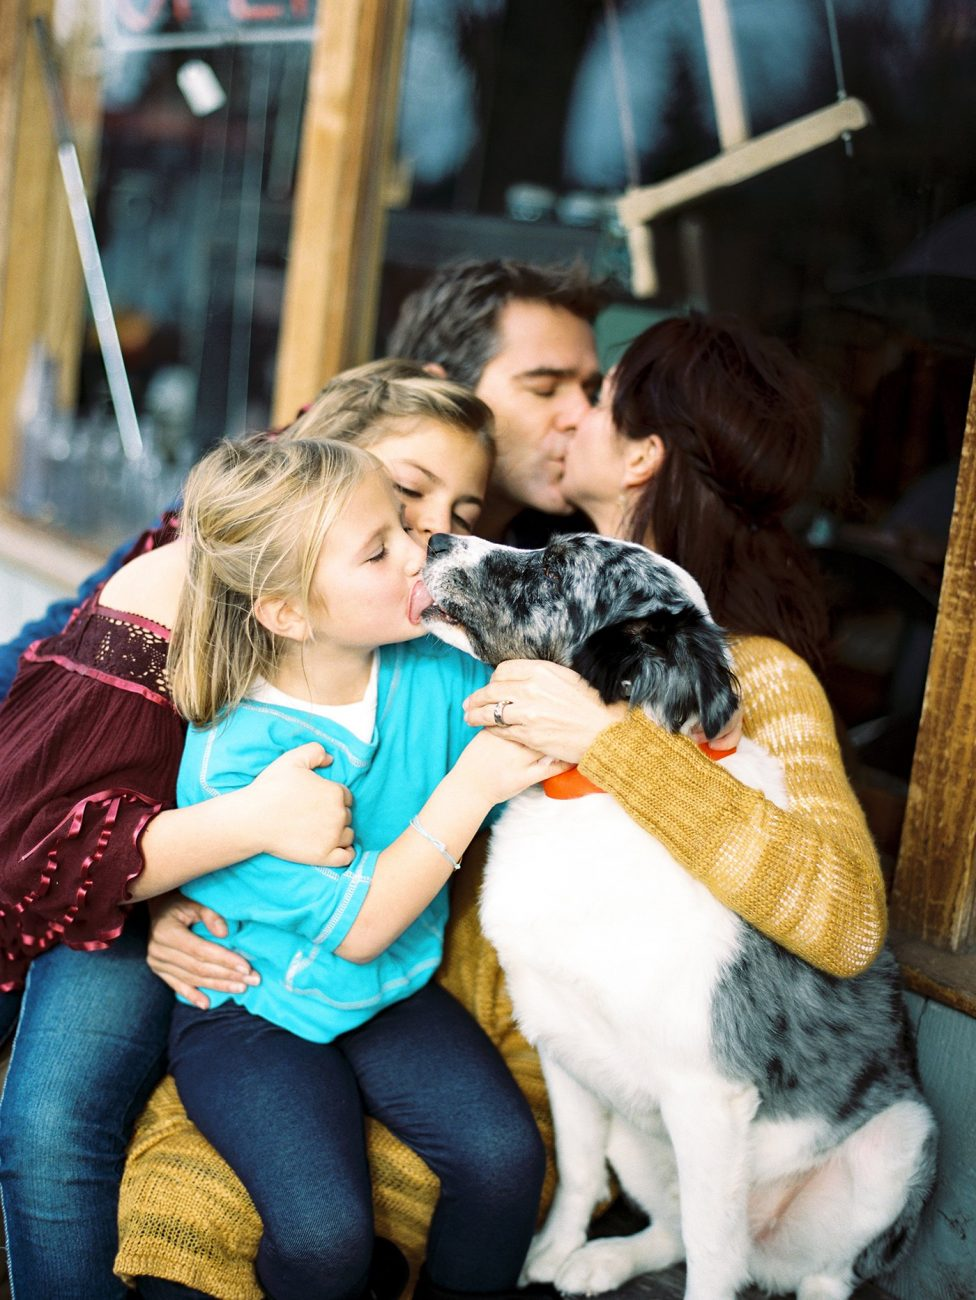 Family kissing their dog.